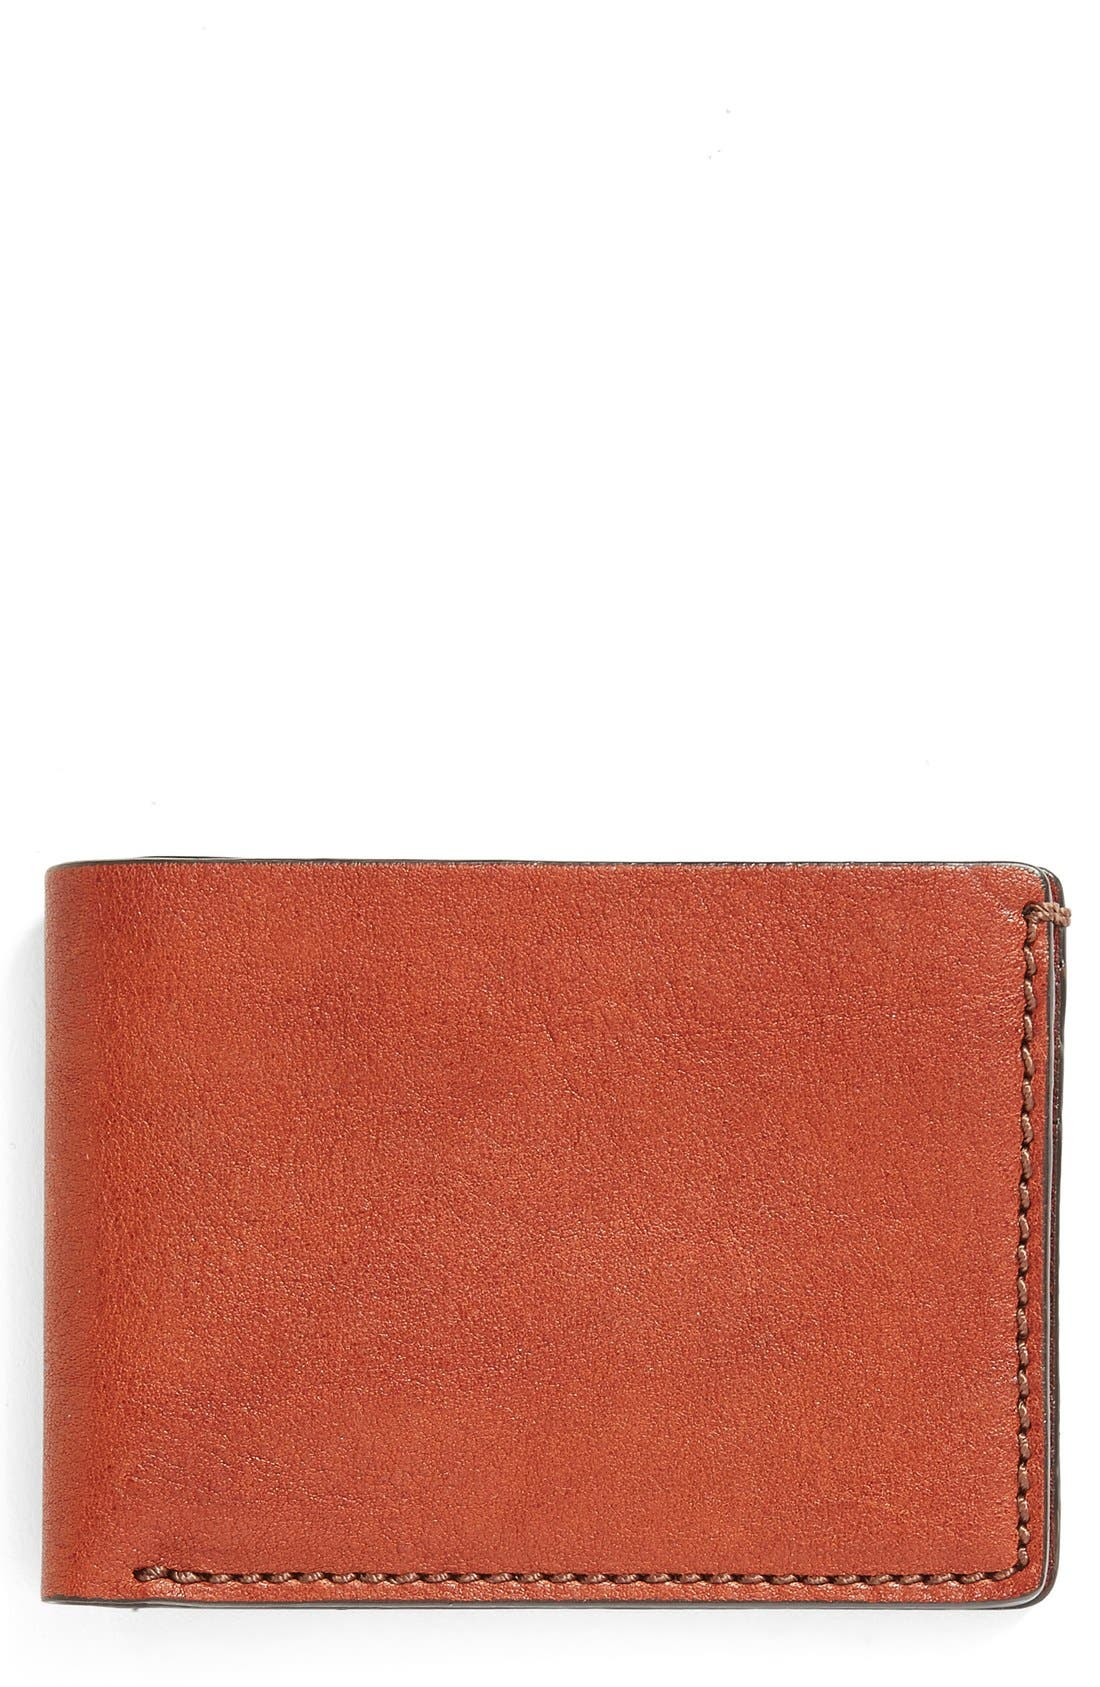 Leather Bifold Wallet,                         Main,                         color, 200